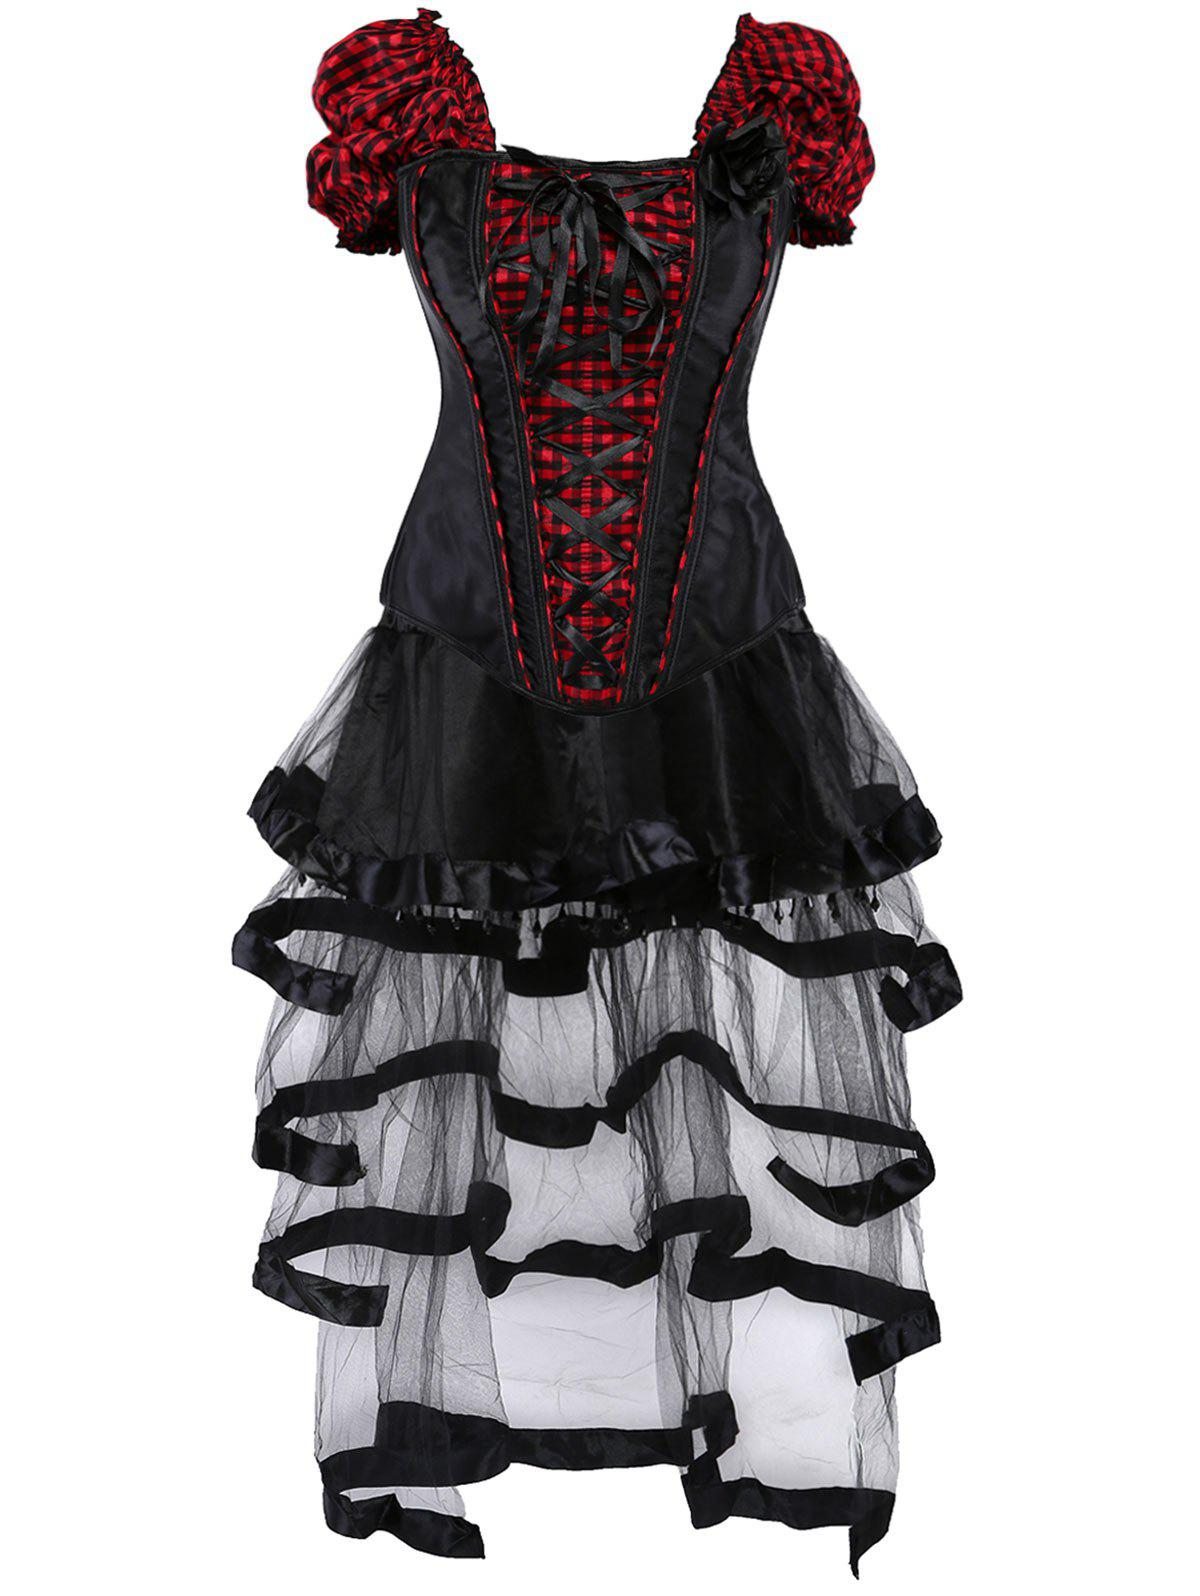 Gothic Checked Lace Up Corset with Sheer Skirt - RED/BLACK XL